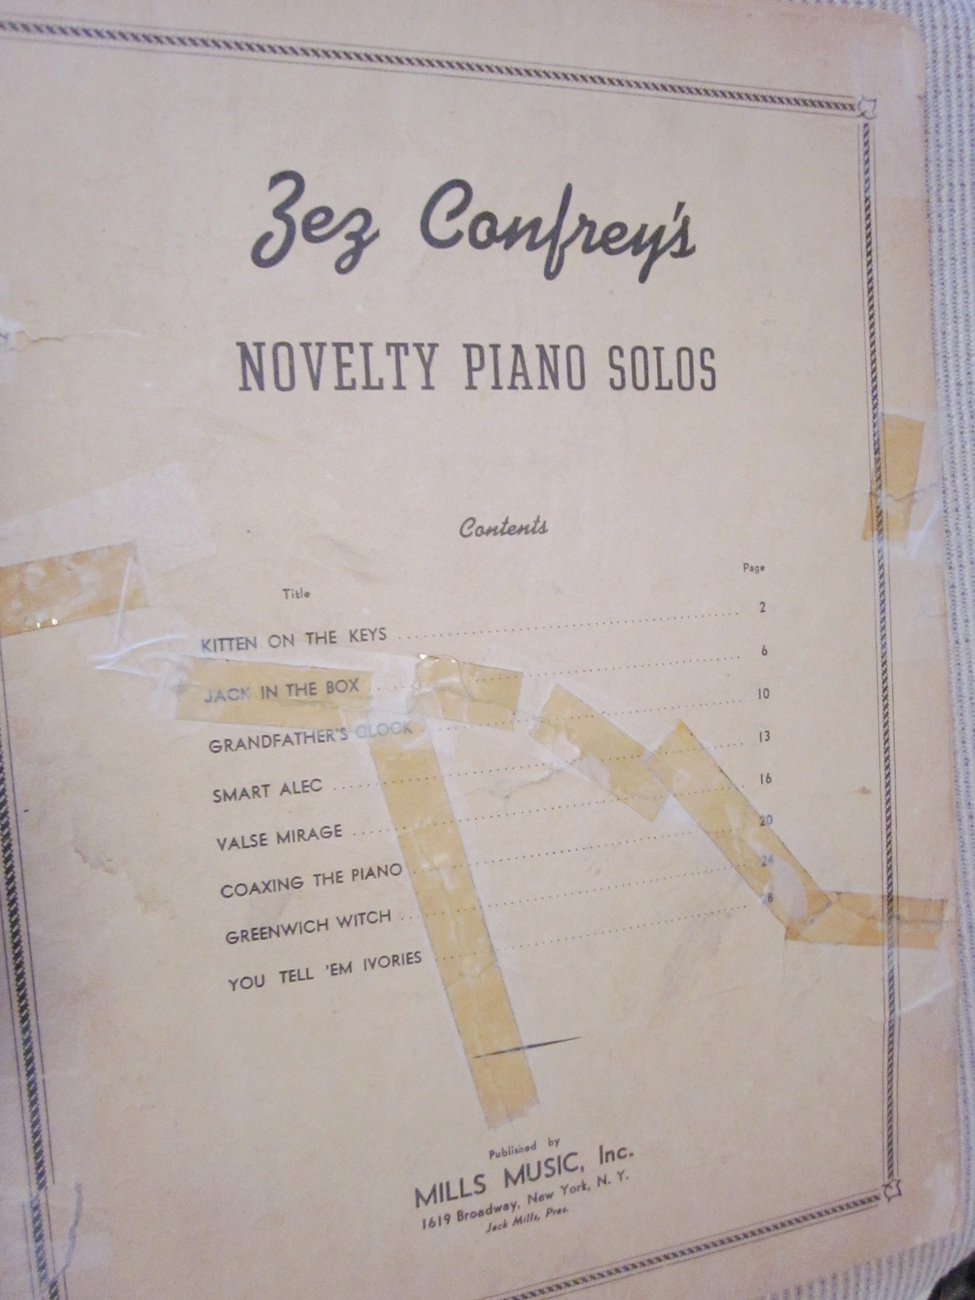 Vintage Sheet Music Novelty Piano Solos by Zez Confrey 1921